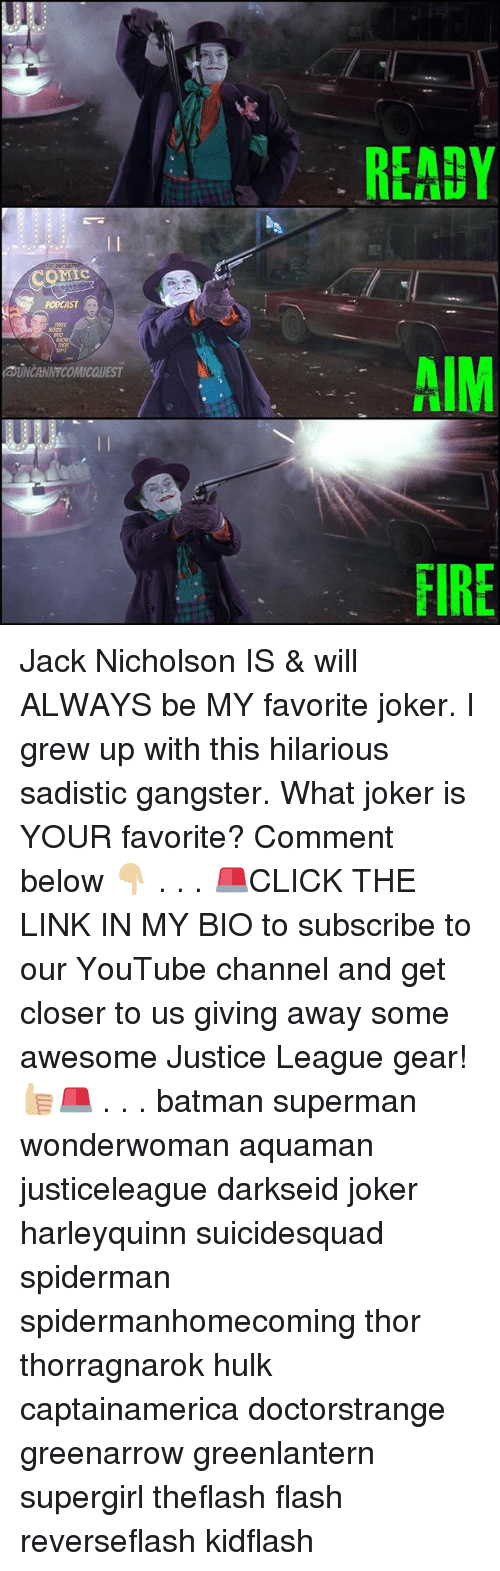 Jack Nicholson: OMIC  UNCANNYCOMICQUEST  READY  AIM  FIRE Jack Nicholson IS & will ALWAYS be MY favorite joker. I grew up with this hilarious sadistic gangster. What joker is YOUR favorite? Comment below 👇🏼 . . . 🚨CLICK THE LINK IN MY BIO to subscribe to our YouTube channel and get closer to us giving away some awesome Justice League gear!👍🏼🚨 . . . batman superman wonderwoman aquaman justiceleague darkseid joker harleyquinn suicidesquad spiderman spidermanhomecoming thor thorragnarok hulk captainamerica doctorstrange greenarrow greenlantern supergirl theflash flash reverseflash kidflash